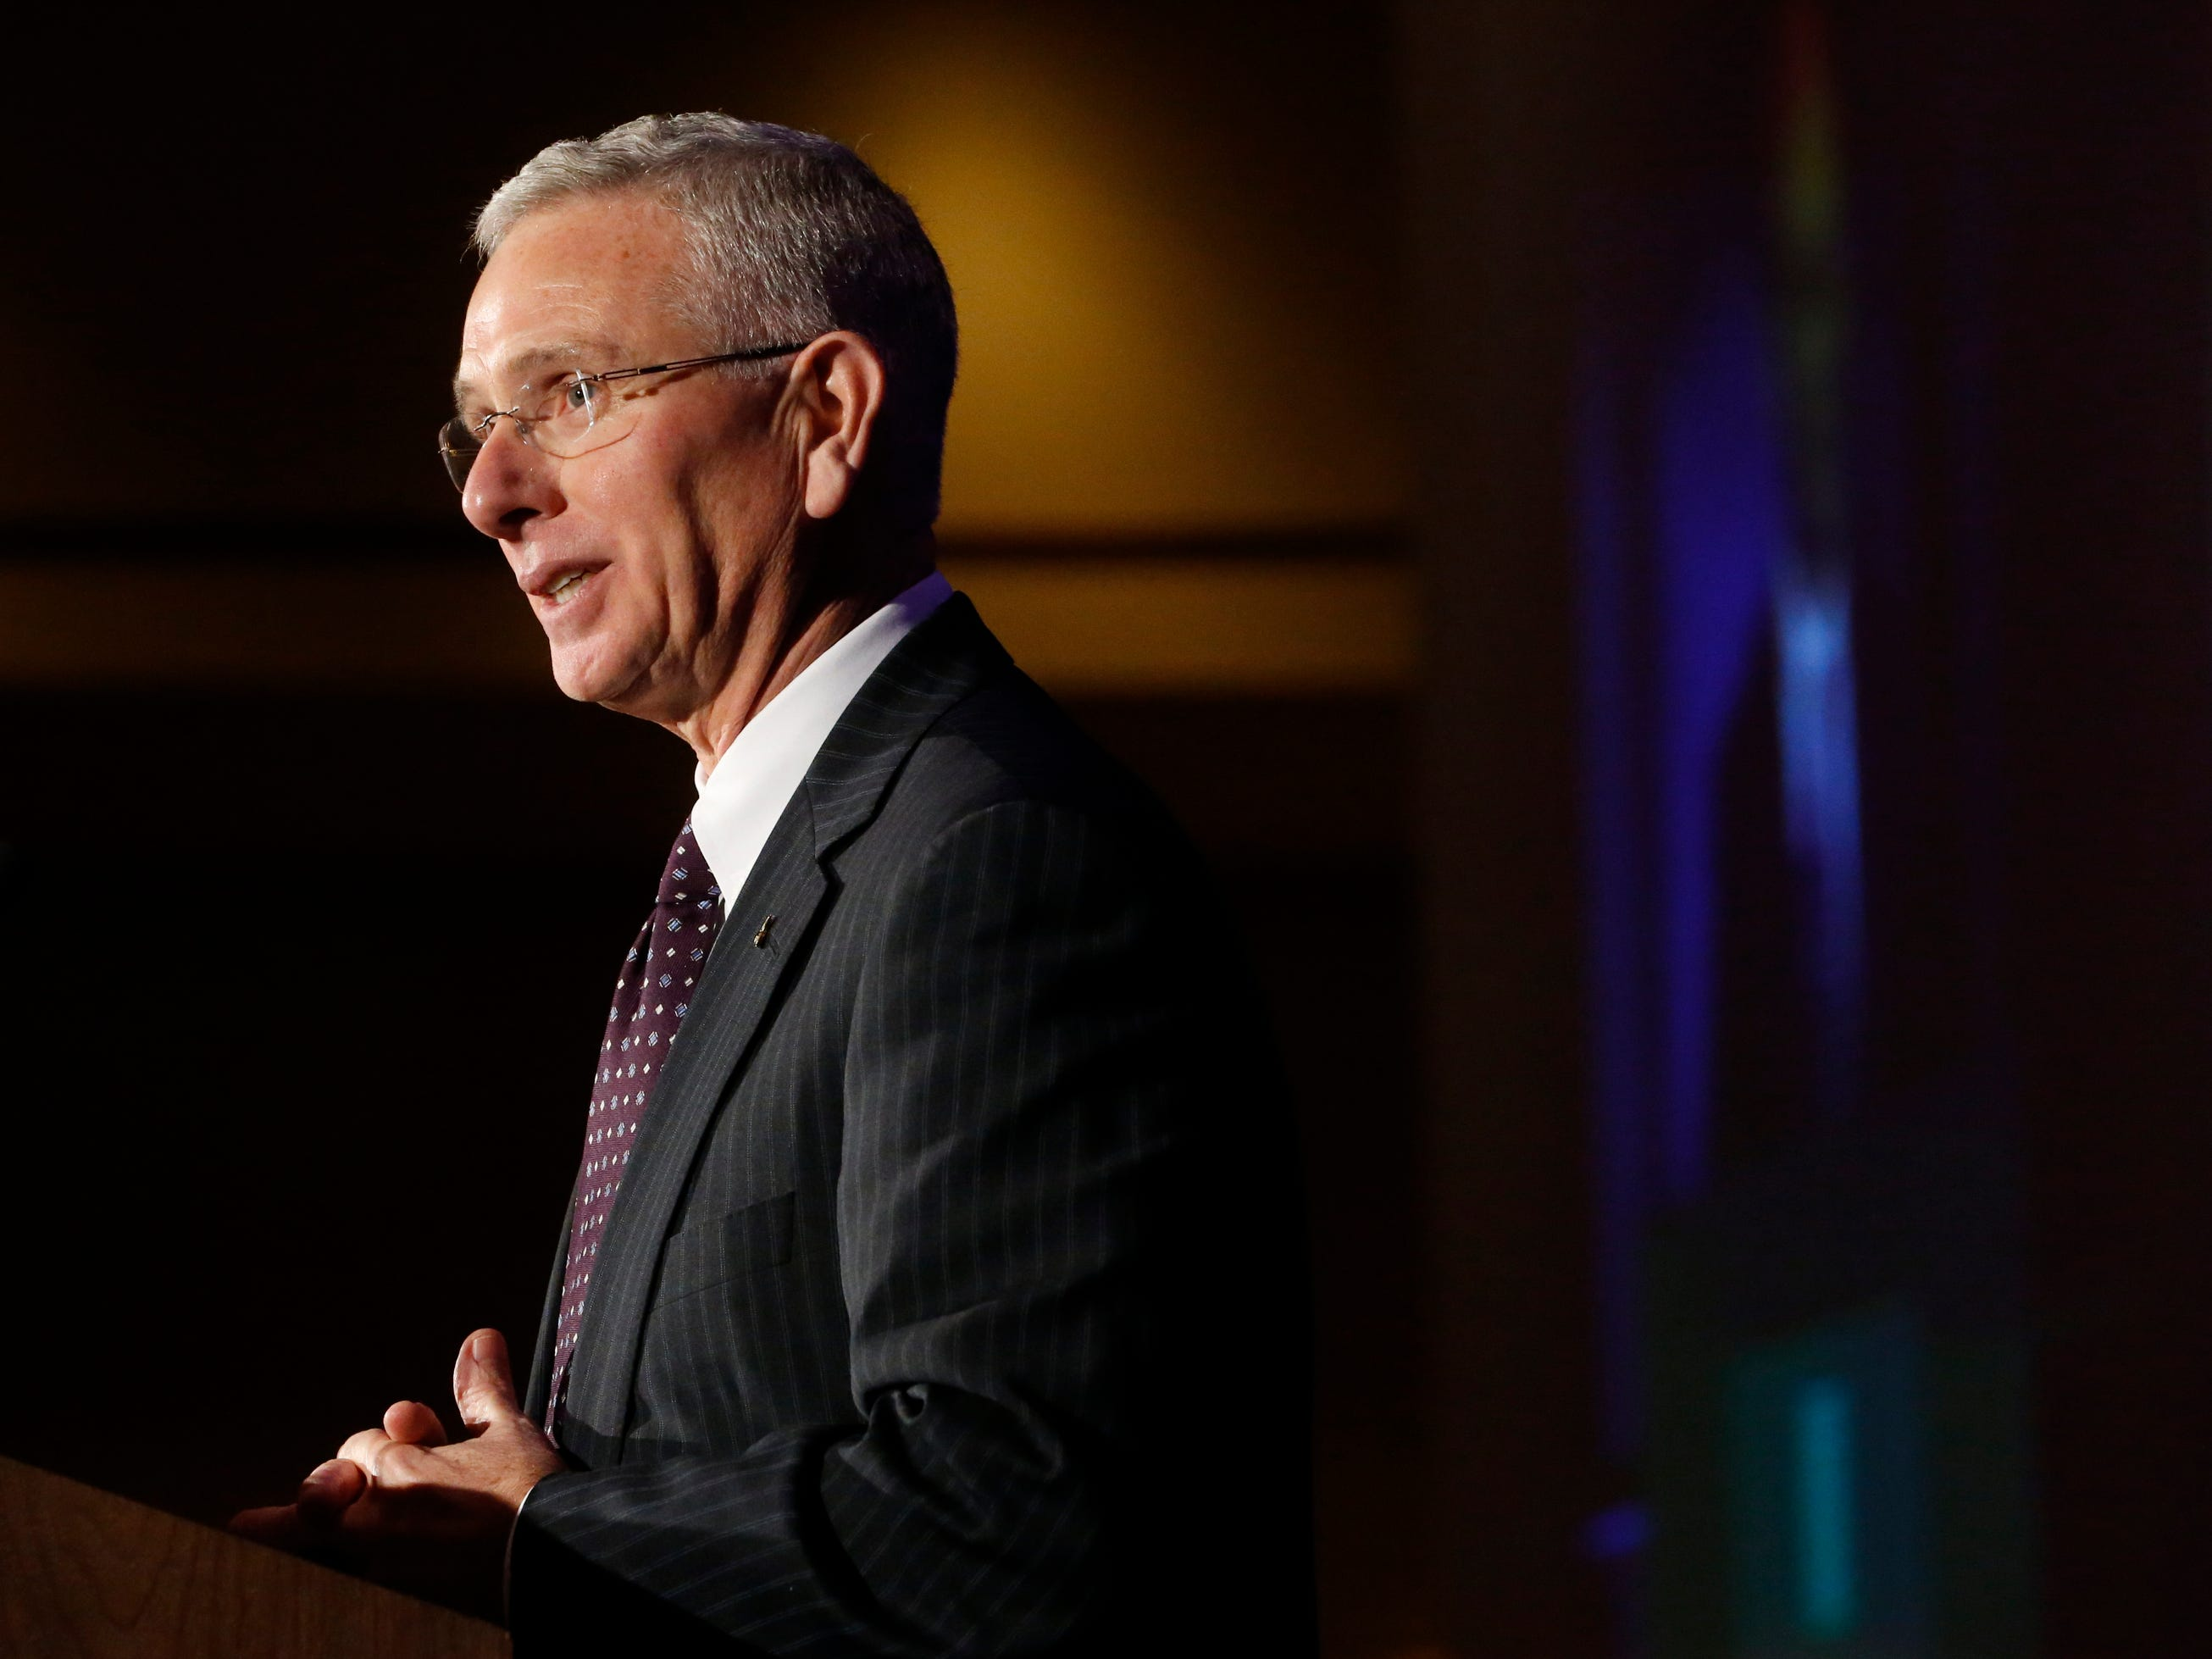 Gordon Ferguson, addresses the crowd after he received this year's Business Legend of the Year at Business at Its Best that was held on Wednesday, Jan. 31, 2019 at Embassy Suites.